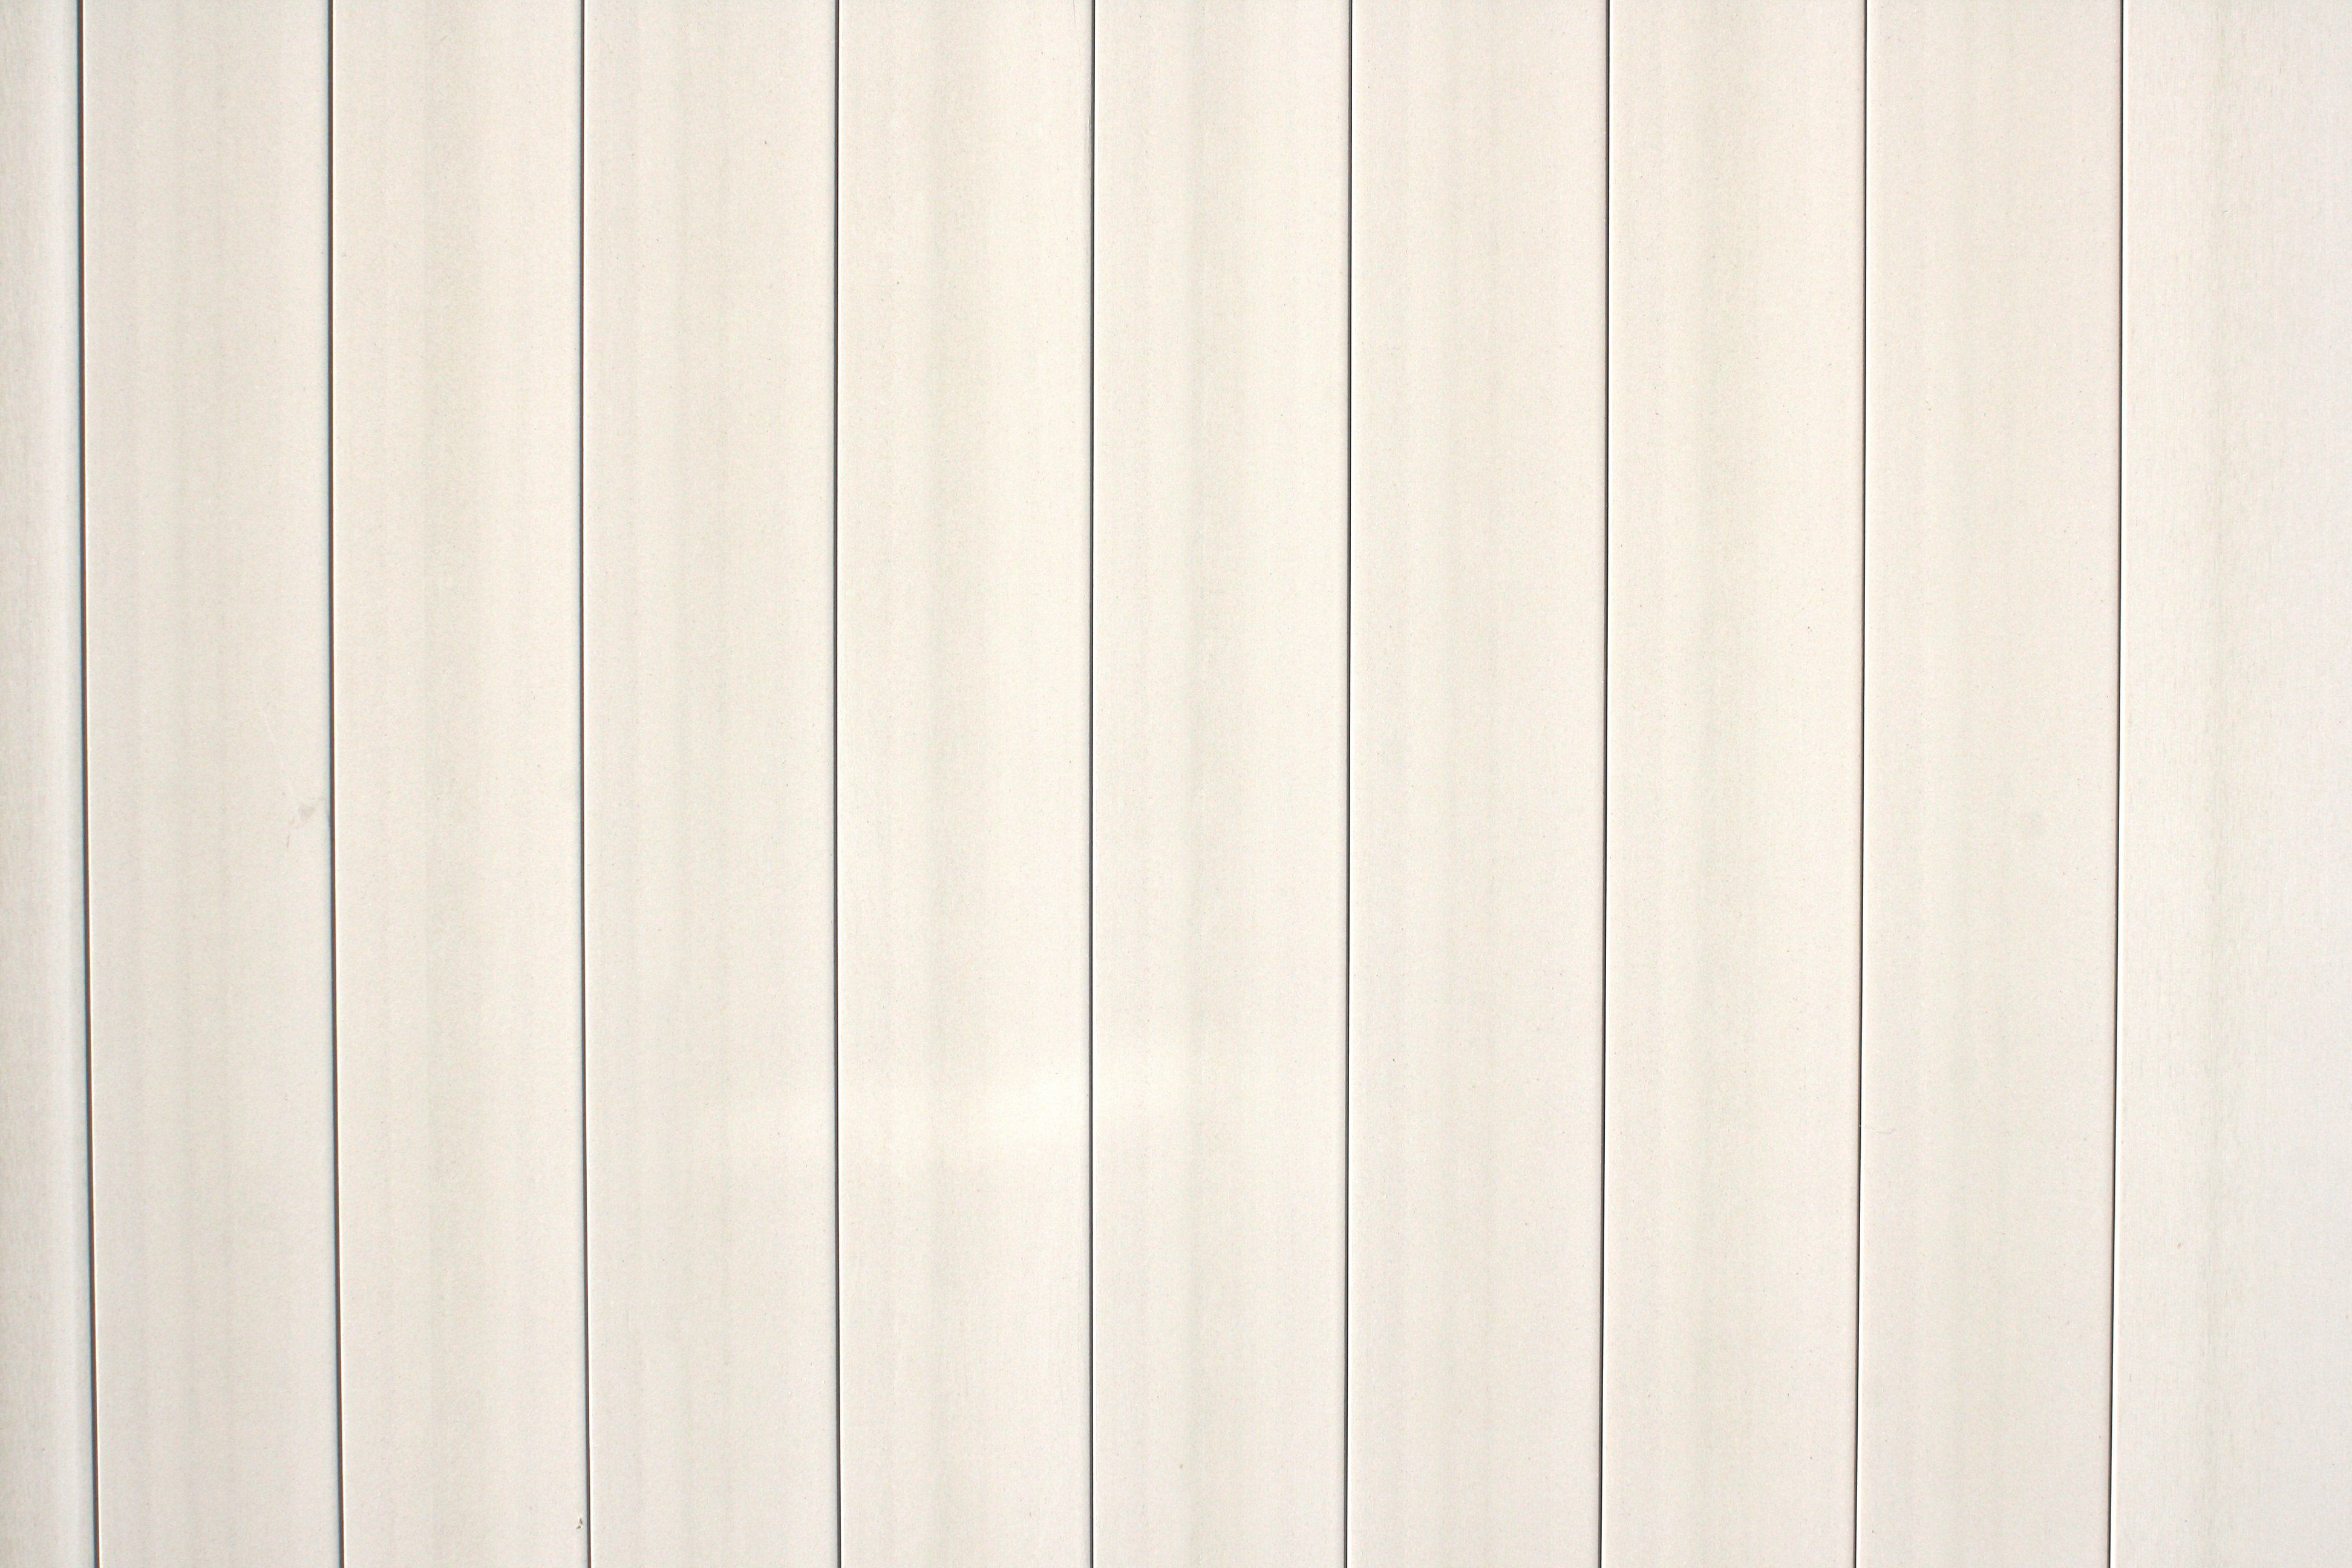 Off white diagonal striped plastic texture picture free photograph - White Plastic Fence Boards Texture Free High Resolution Photo Wood White